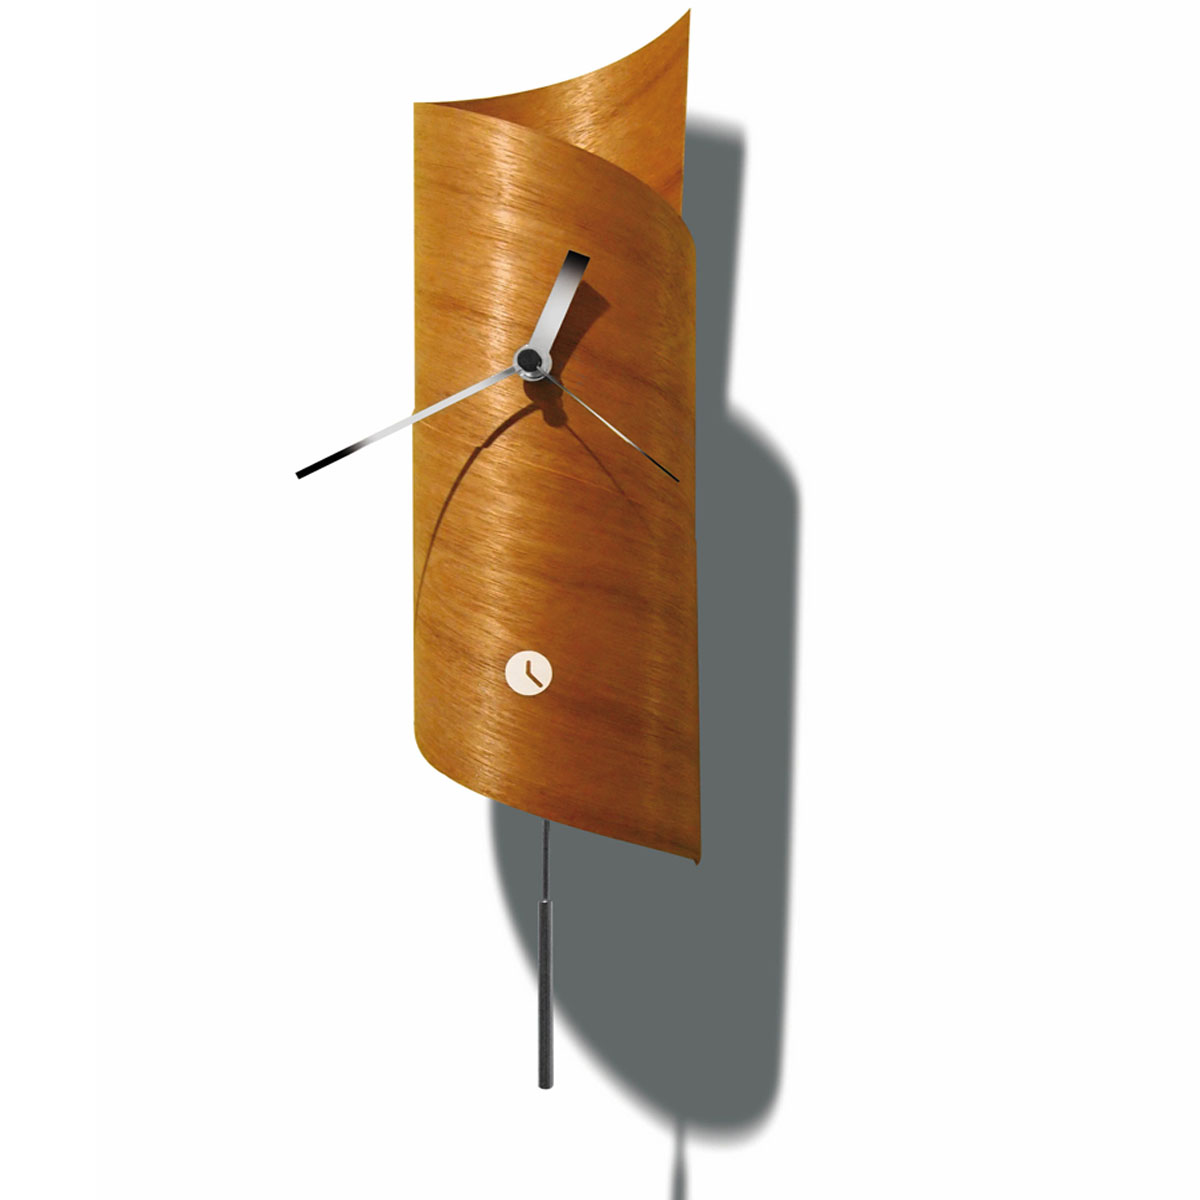 Tothora-Wallsurf-W-Wall-Pendulum-Clock